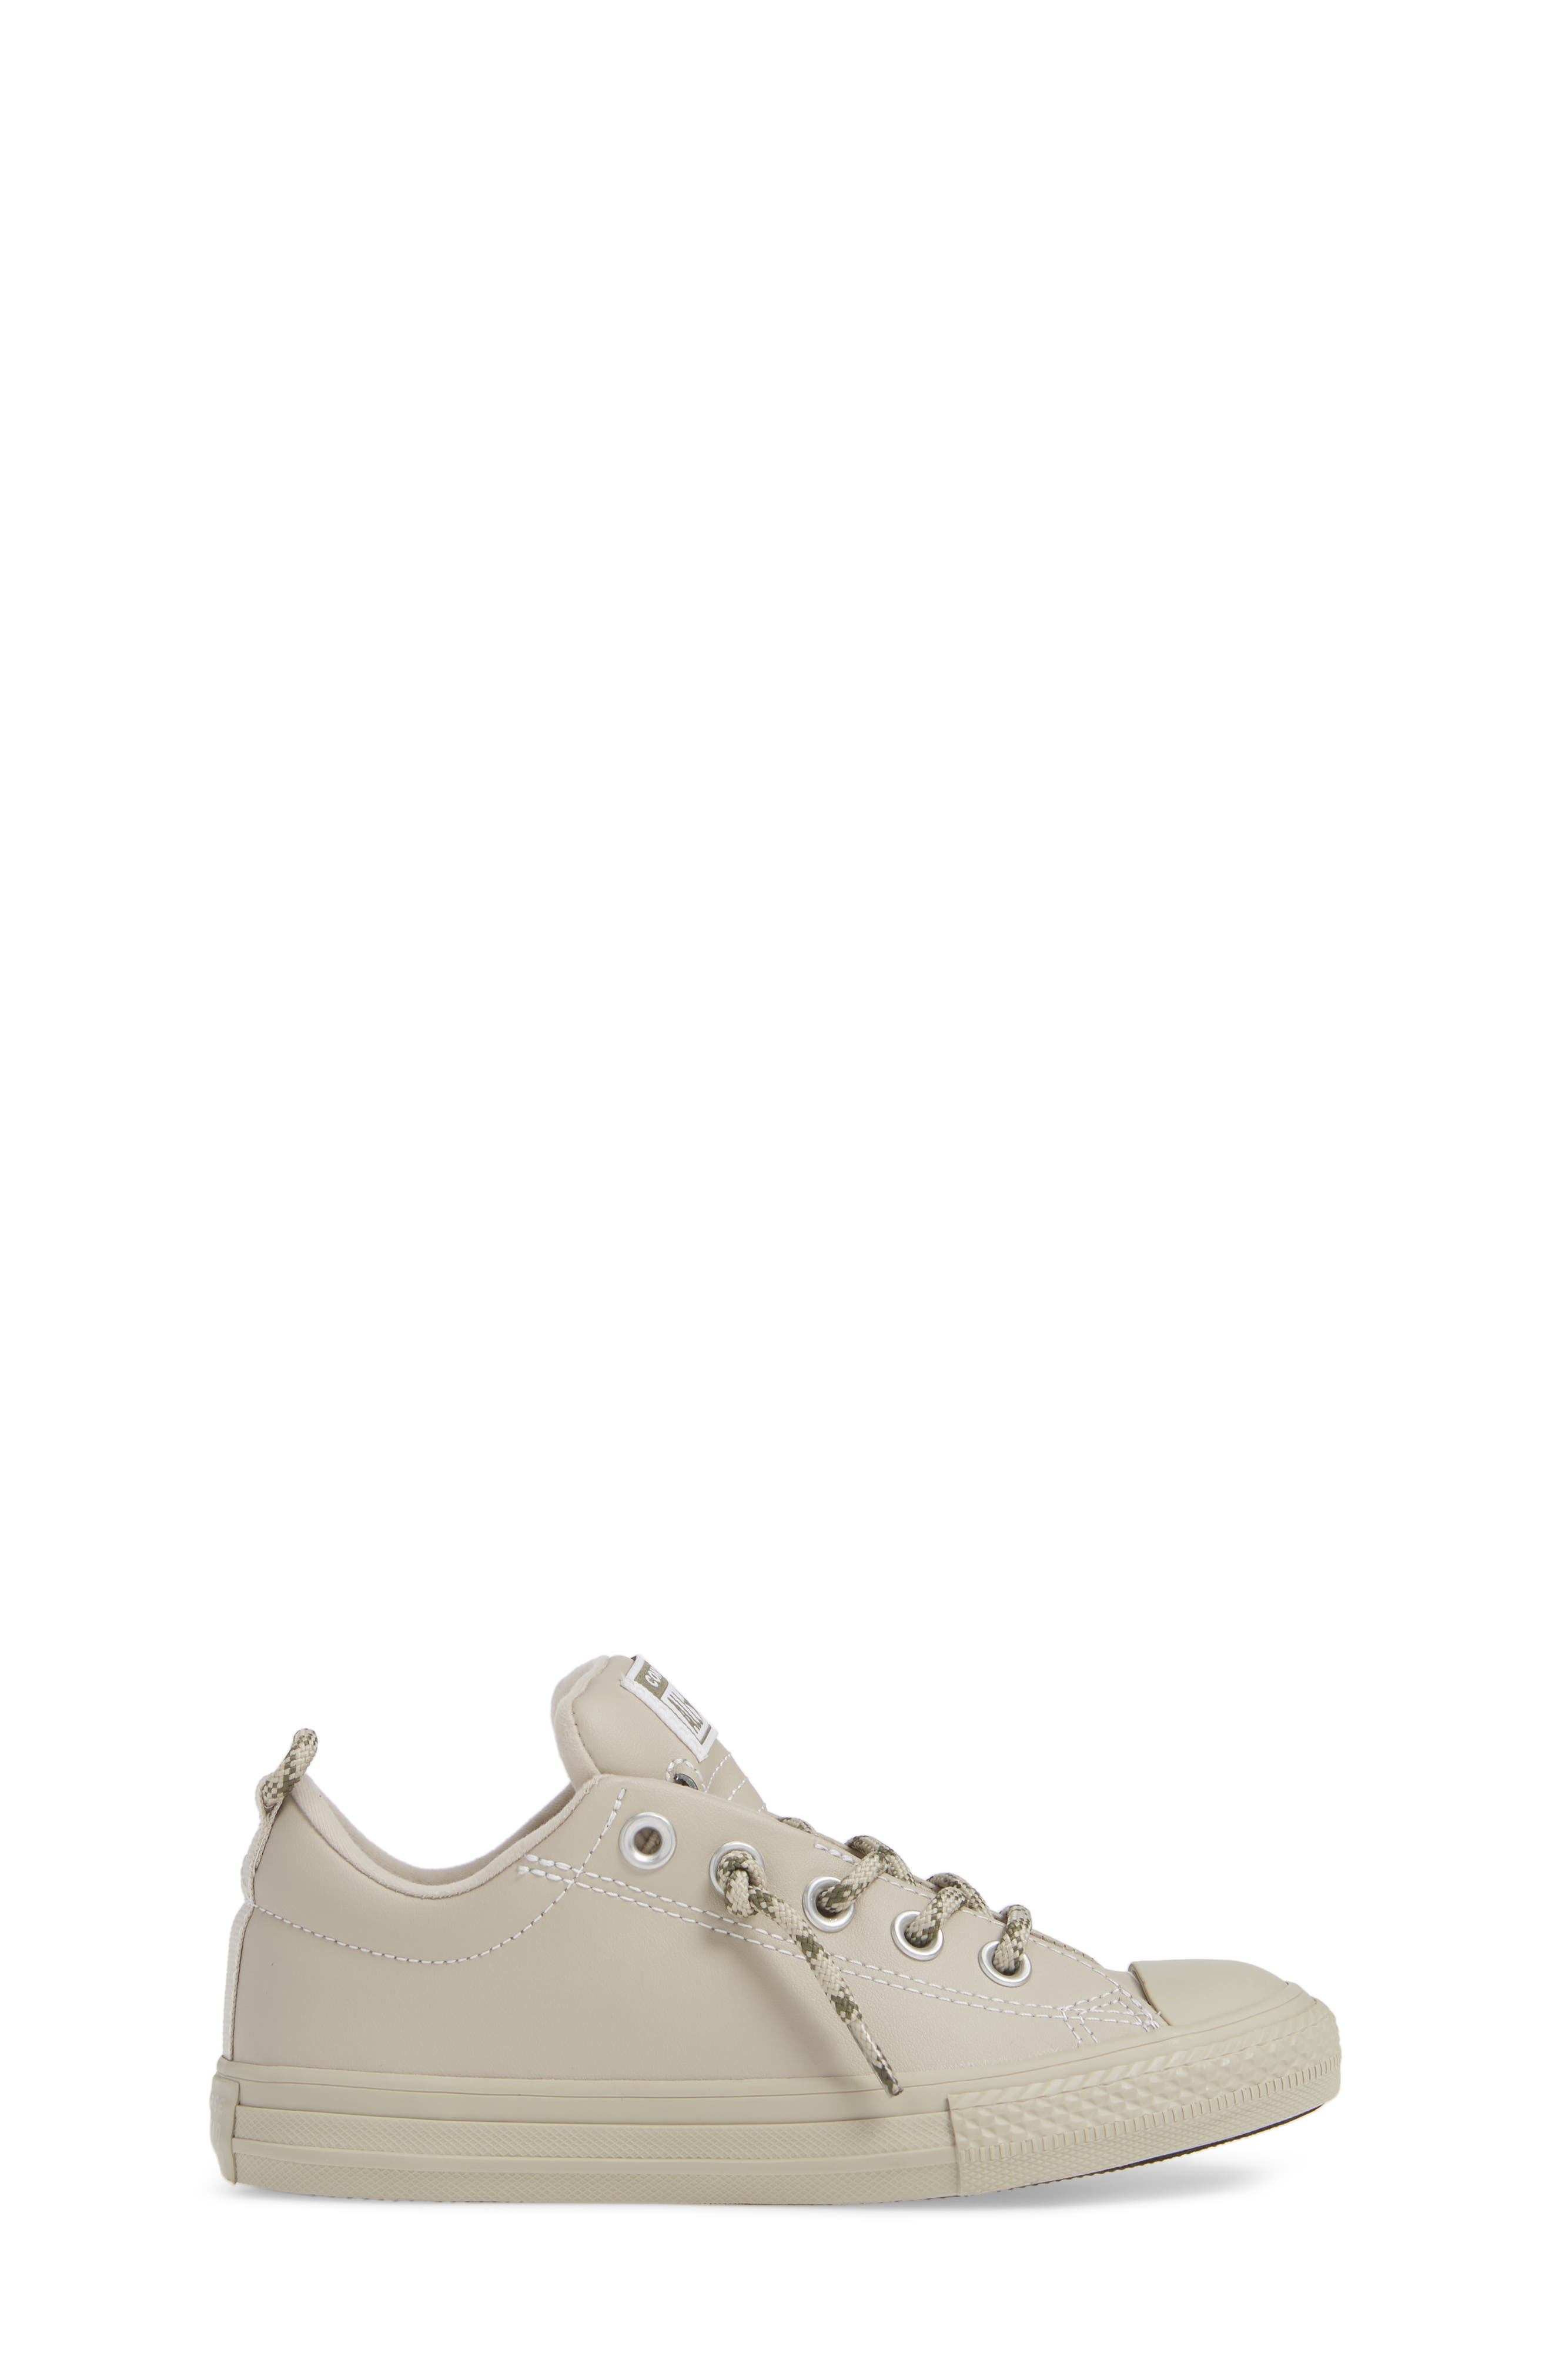 CONVERSE, Chuck Taylor<sup>®</sup> All Star<sup>®</sup> Street Hiker Sneaker, Alternate thumbnail 3, color, PAPYRUS